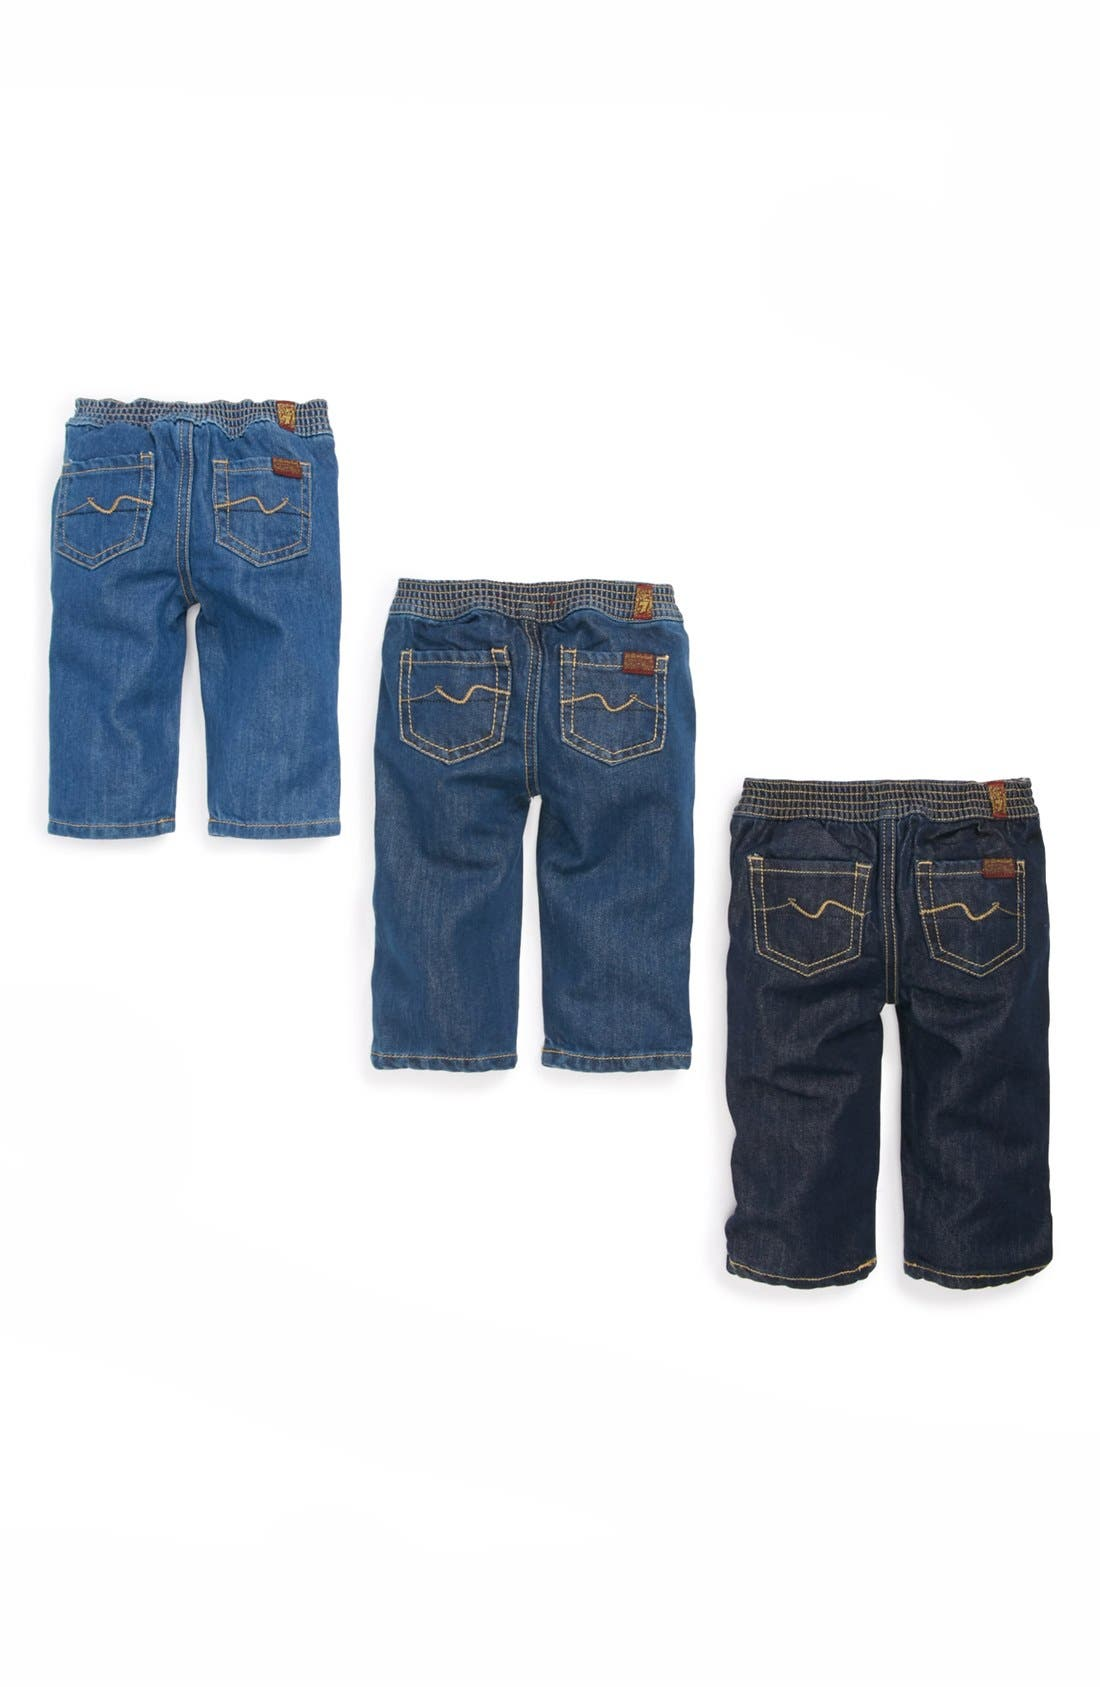 Alternate Image 1 Selected - 7 For All Mankind® Denim Jeans (3-Pack) (Baby)